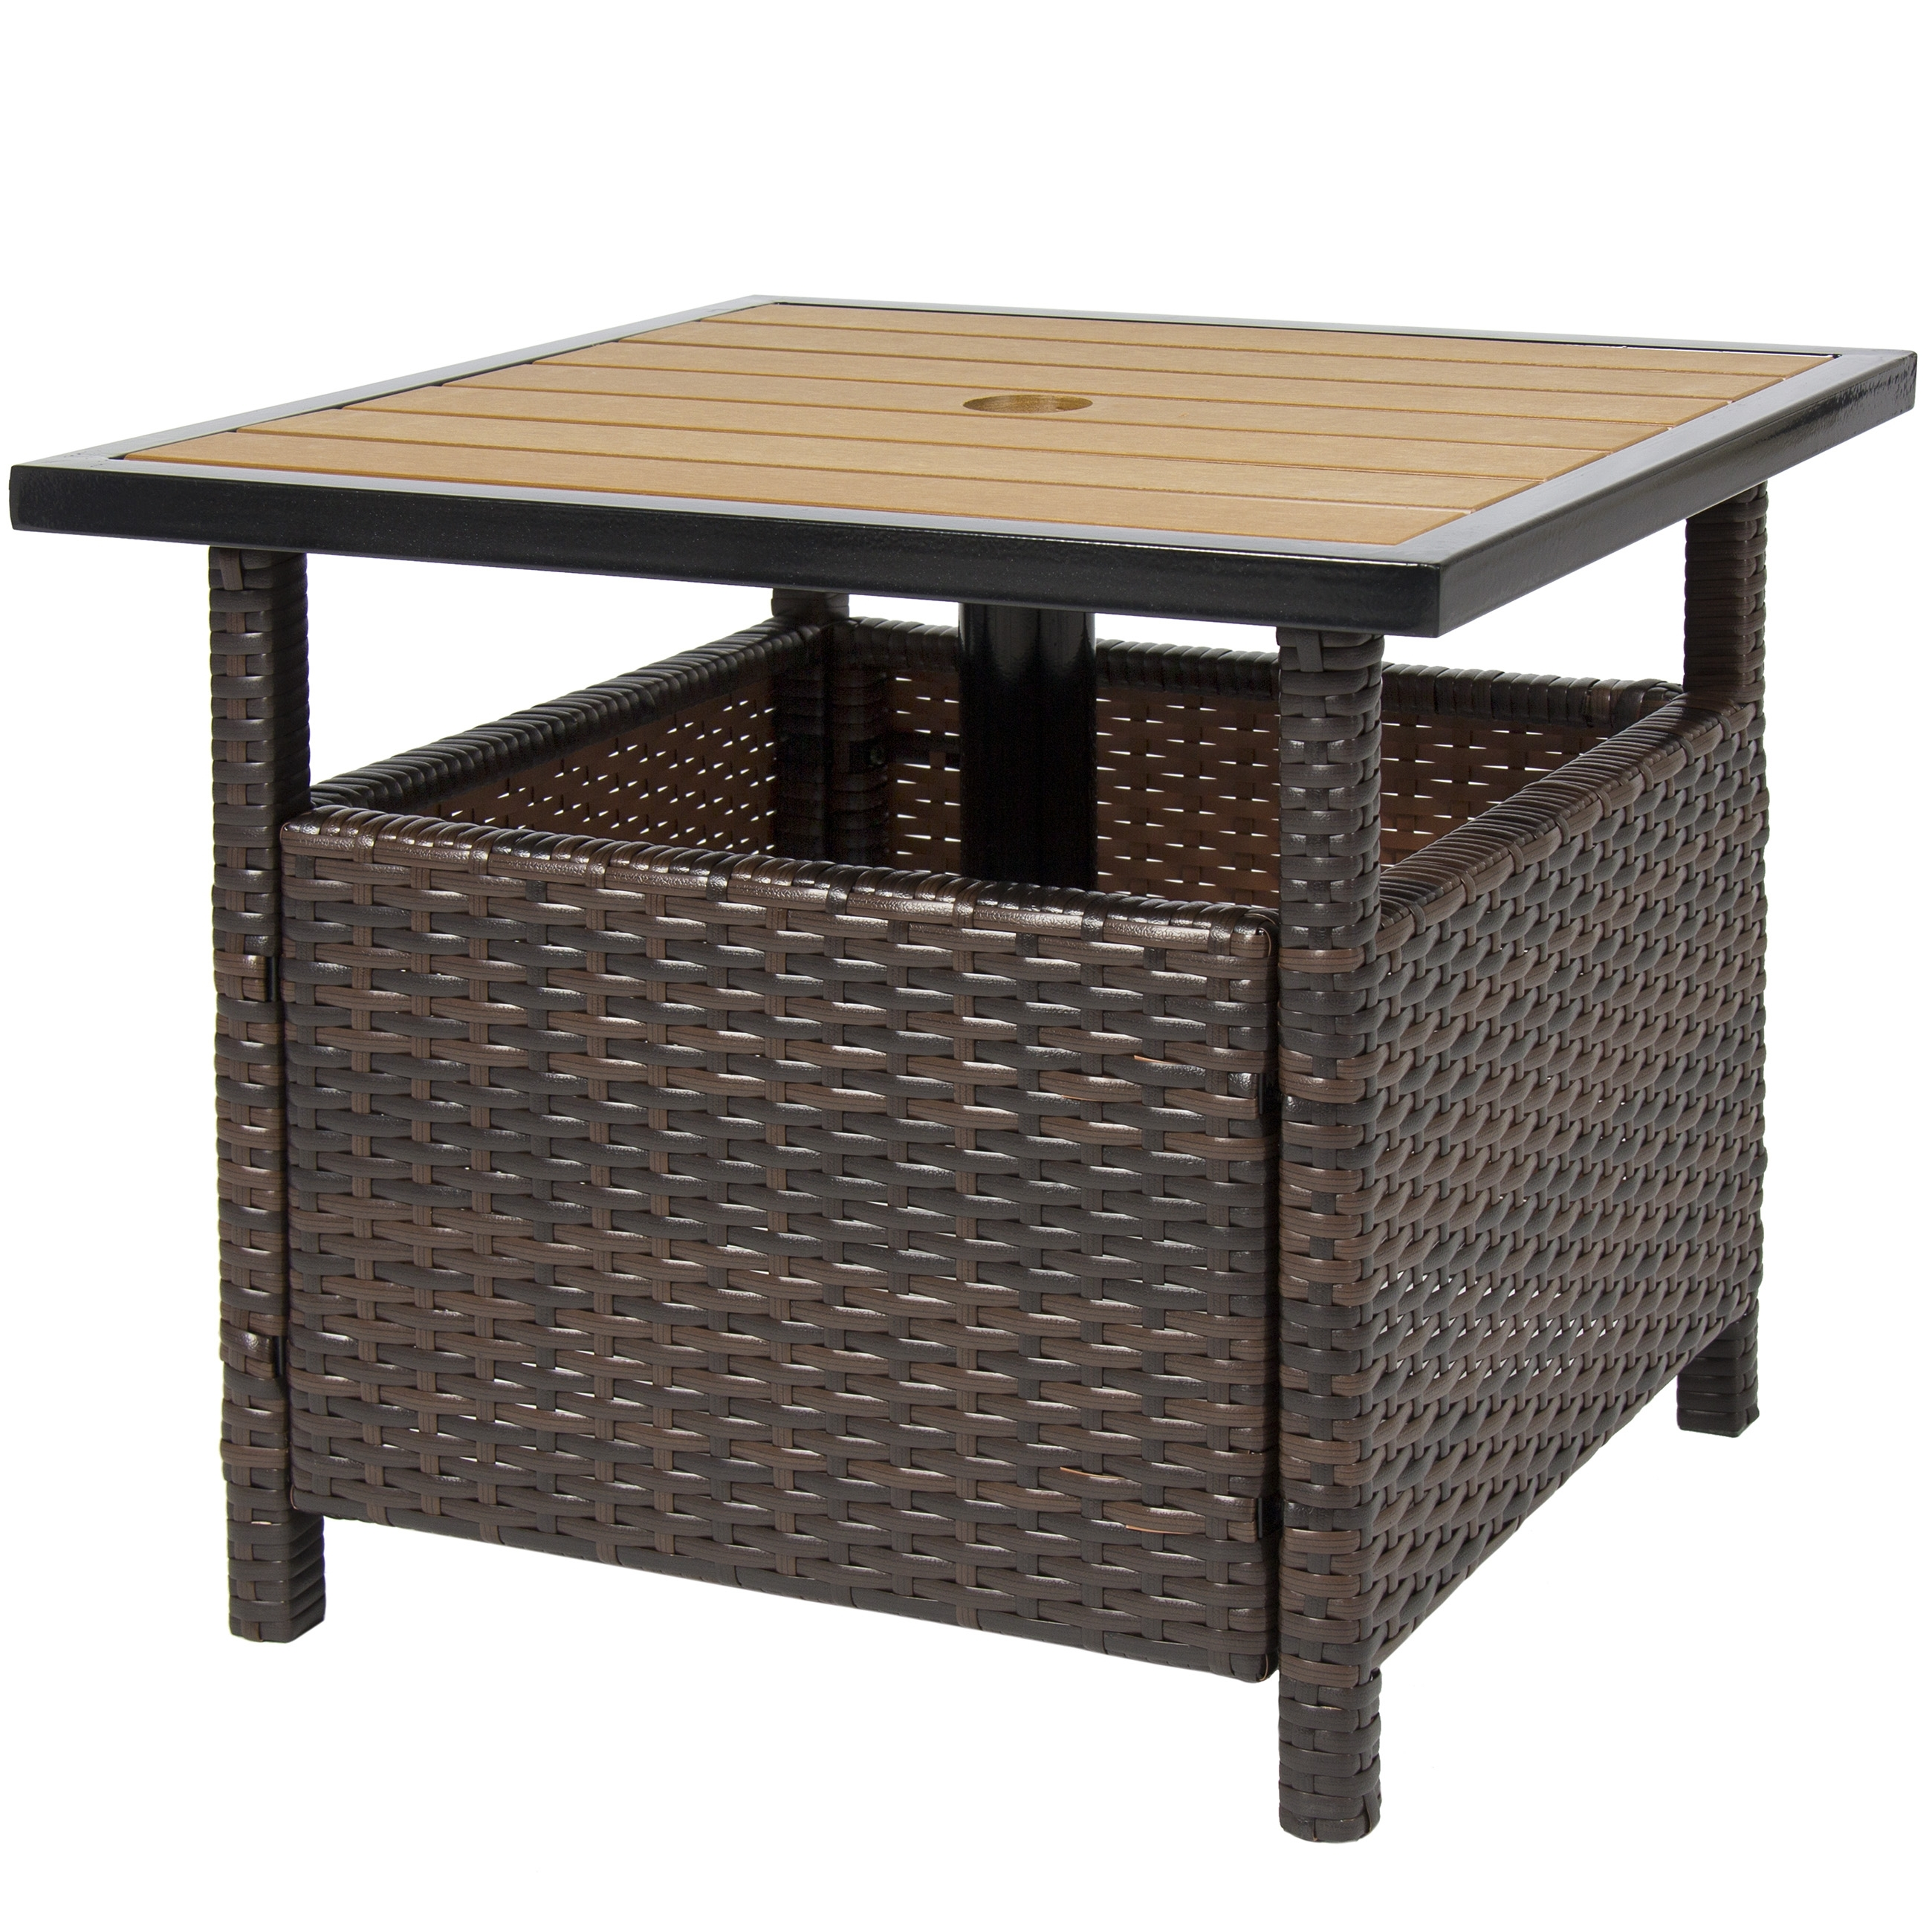 Favorite Best Choice Products Outdoor Furniture Wicker Rattan Patio Umbrella Throughout Patio Umbrellas With Table (View 5 of 20)